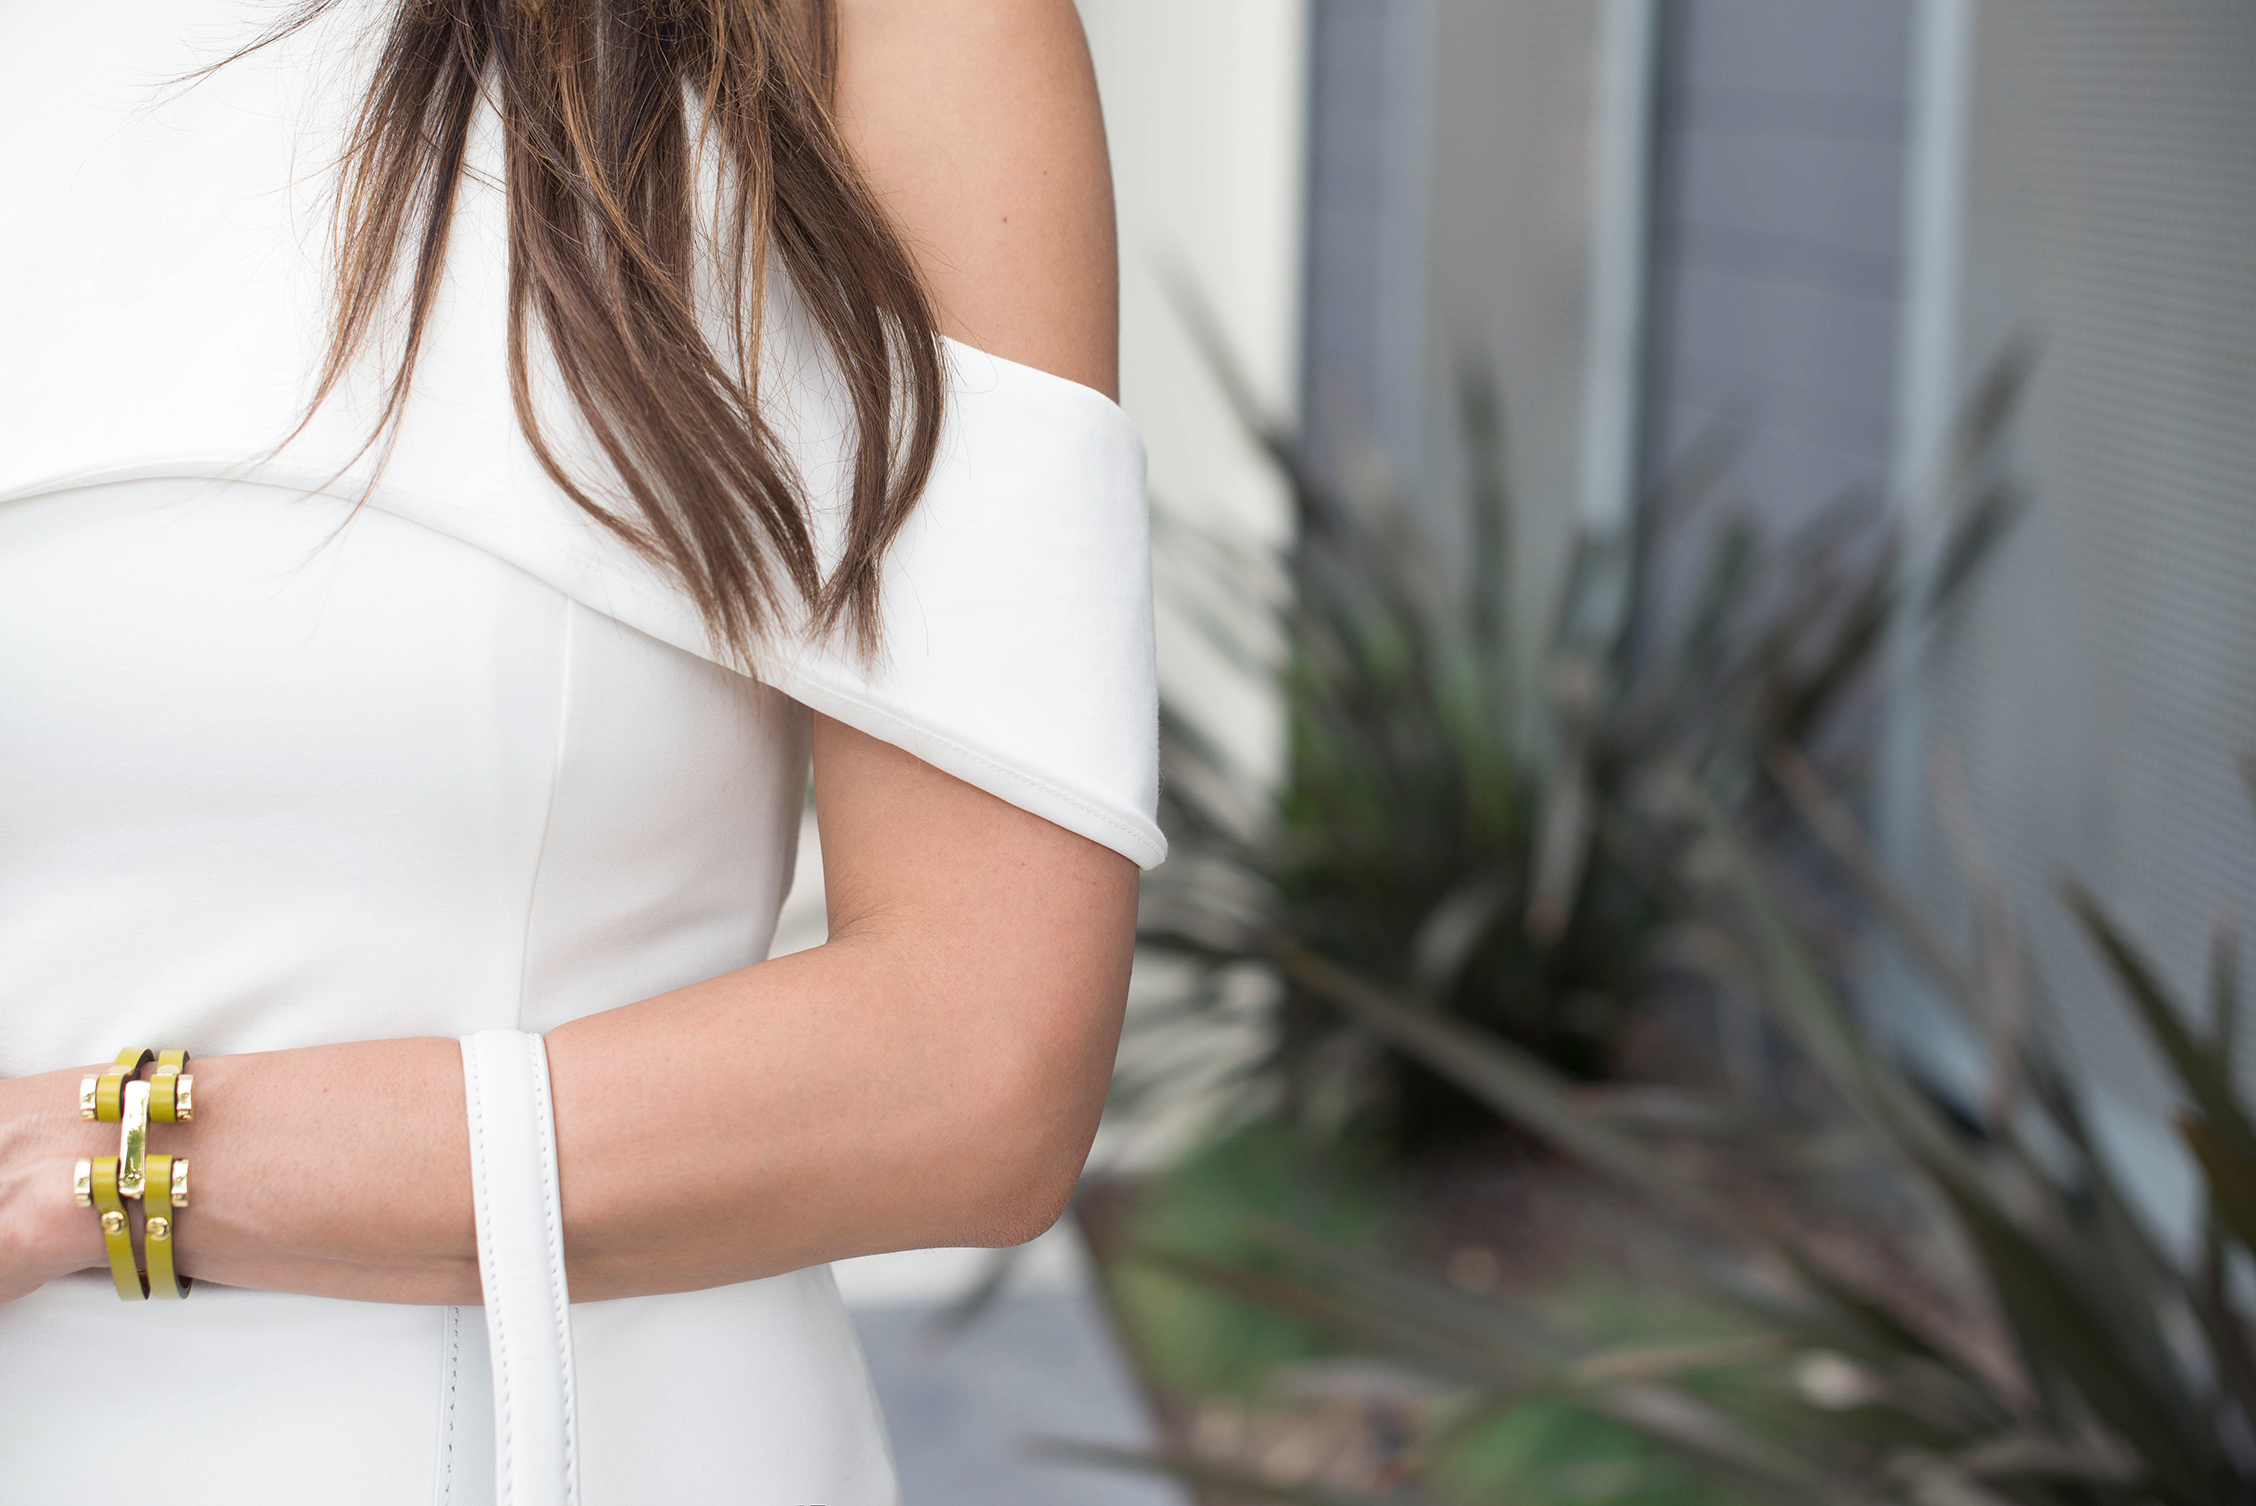 White Cut Out Dress Details